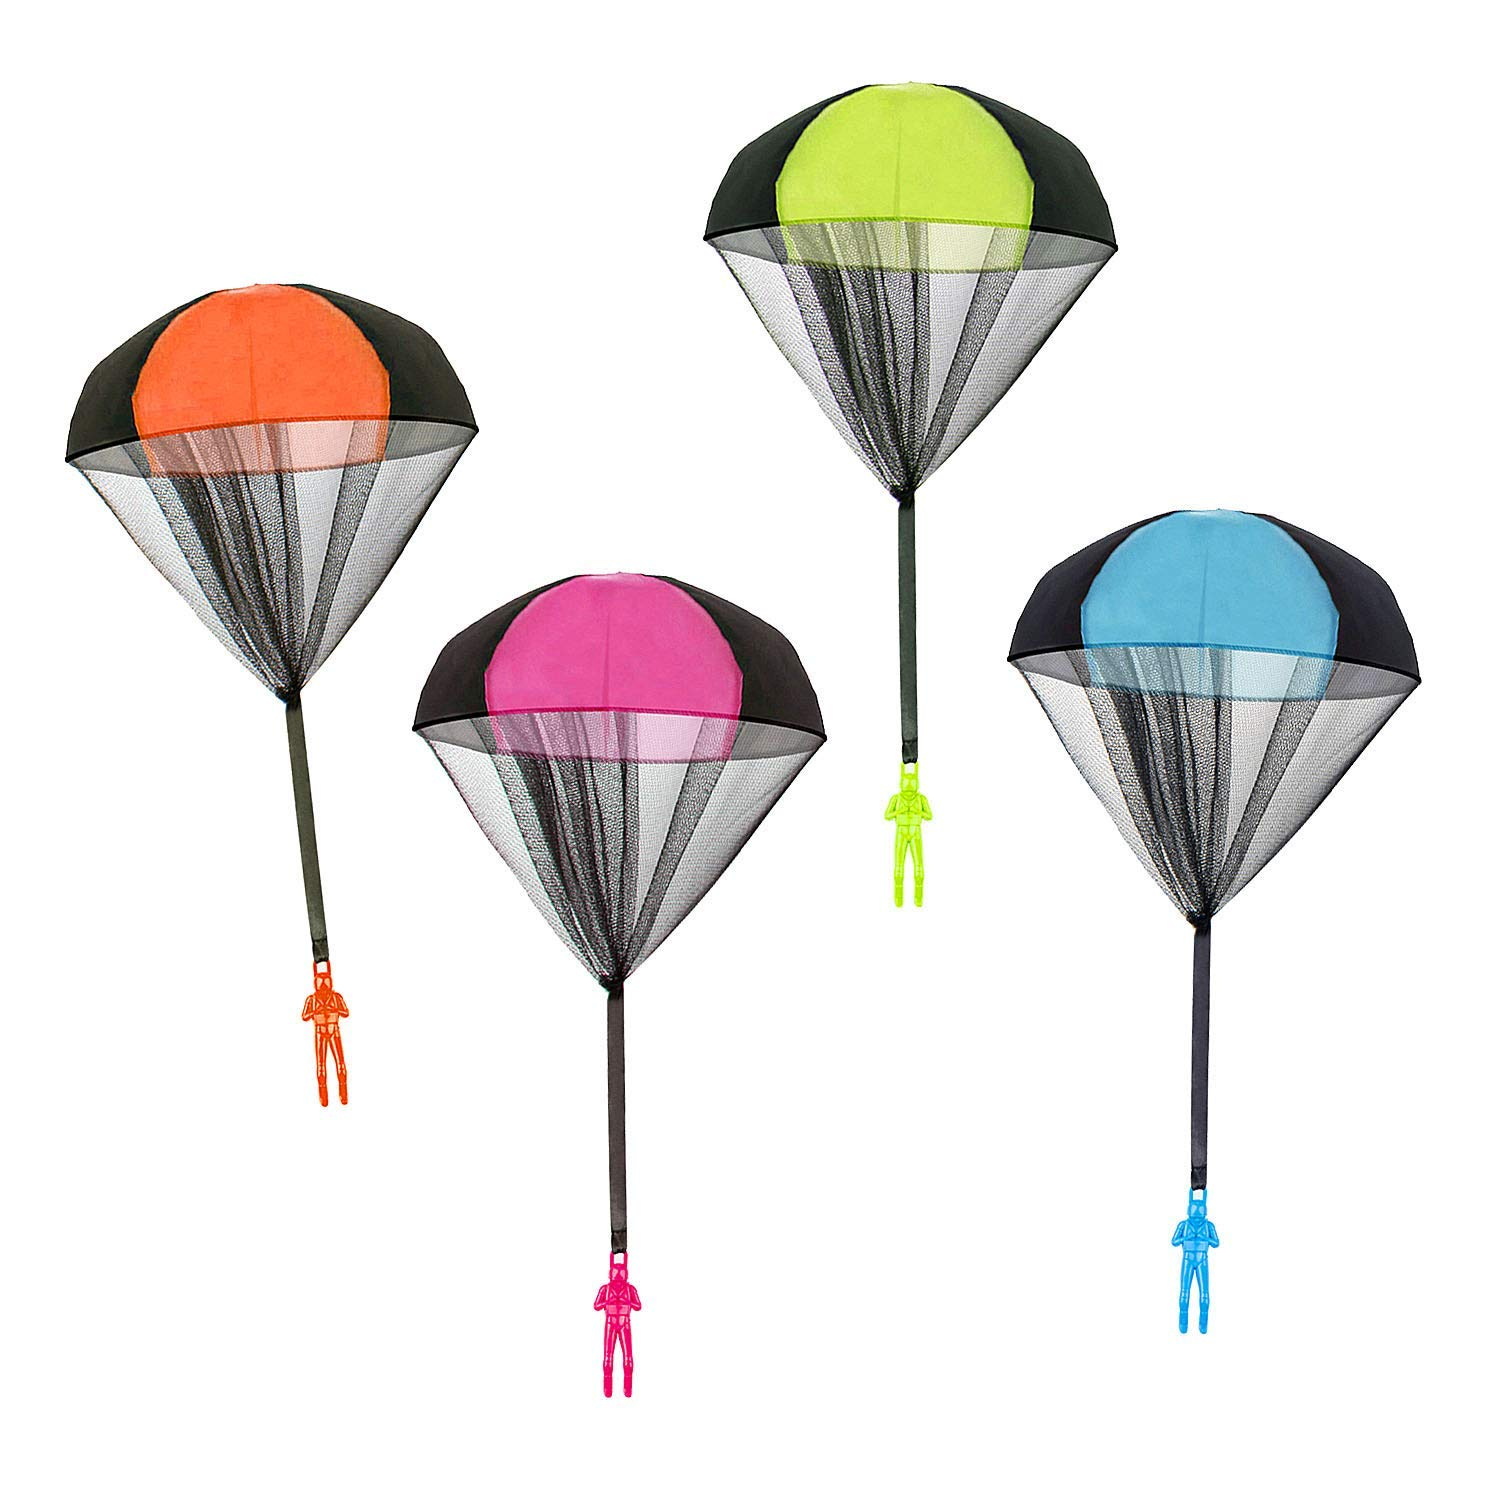 Parachute Toys, 4 PCS Tangle Free Throwing Hand Throw Soldiers Toy Parachute for Kids, Outdoor Children's Flying Toys Paratroopers Party Favors, No Strings No Batteries Toss It Up (Pack of 4) by FlyCloud